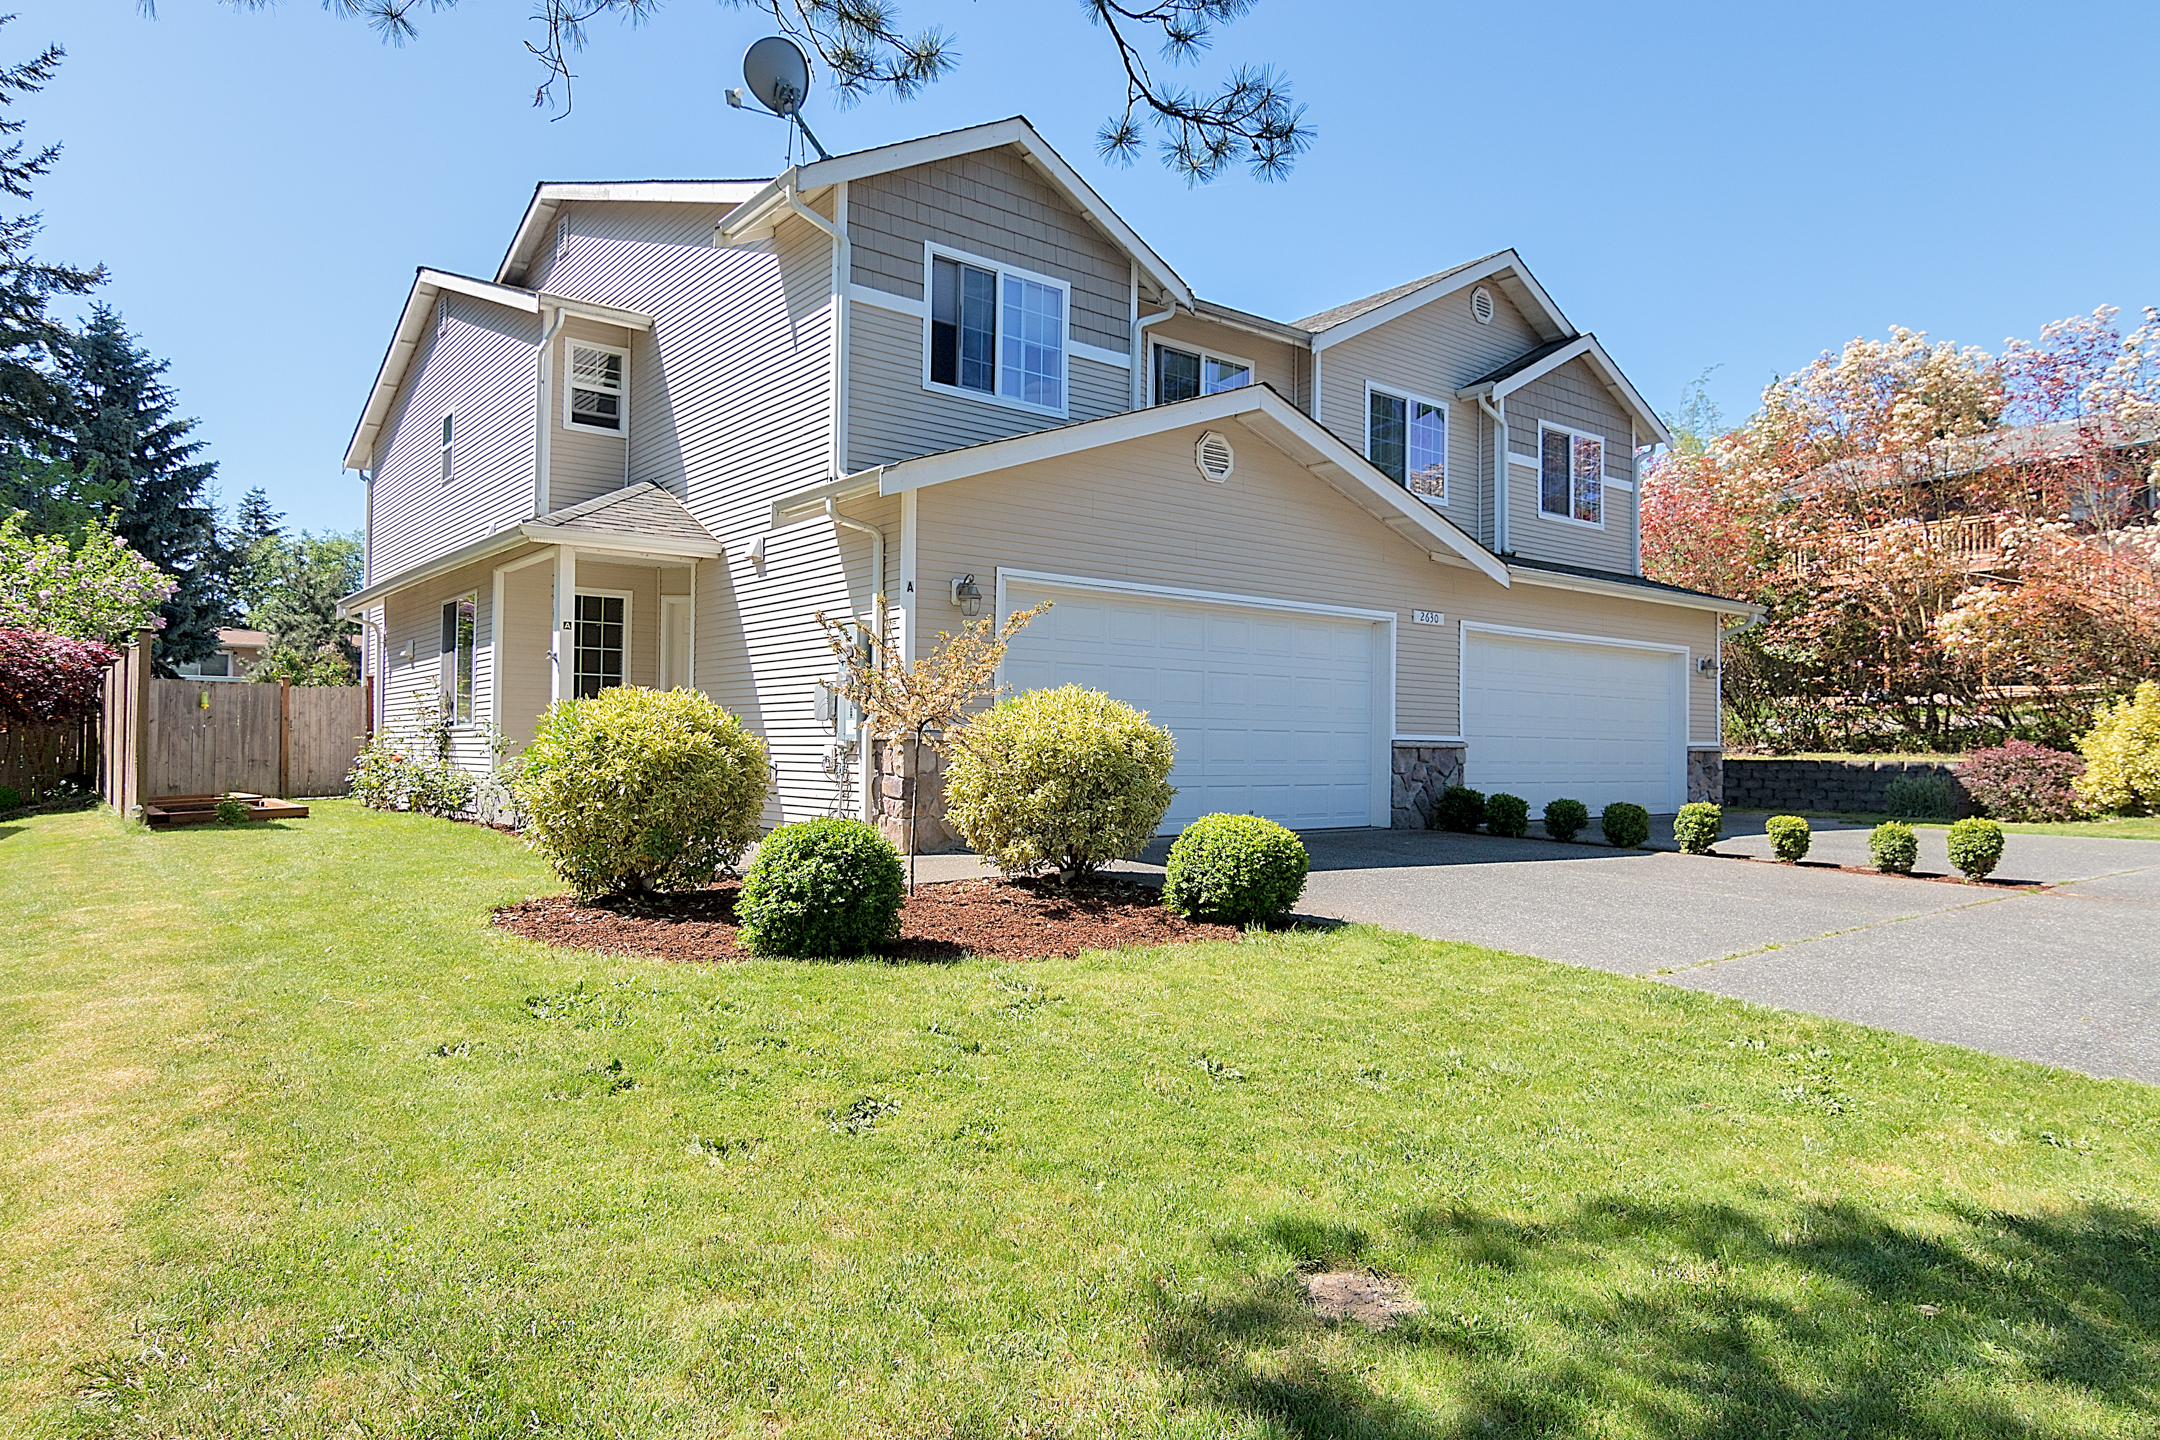 Homes for Sale in Lynnwood Washington